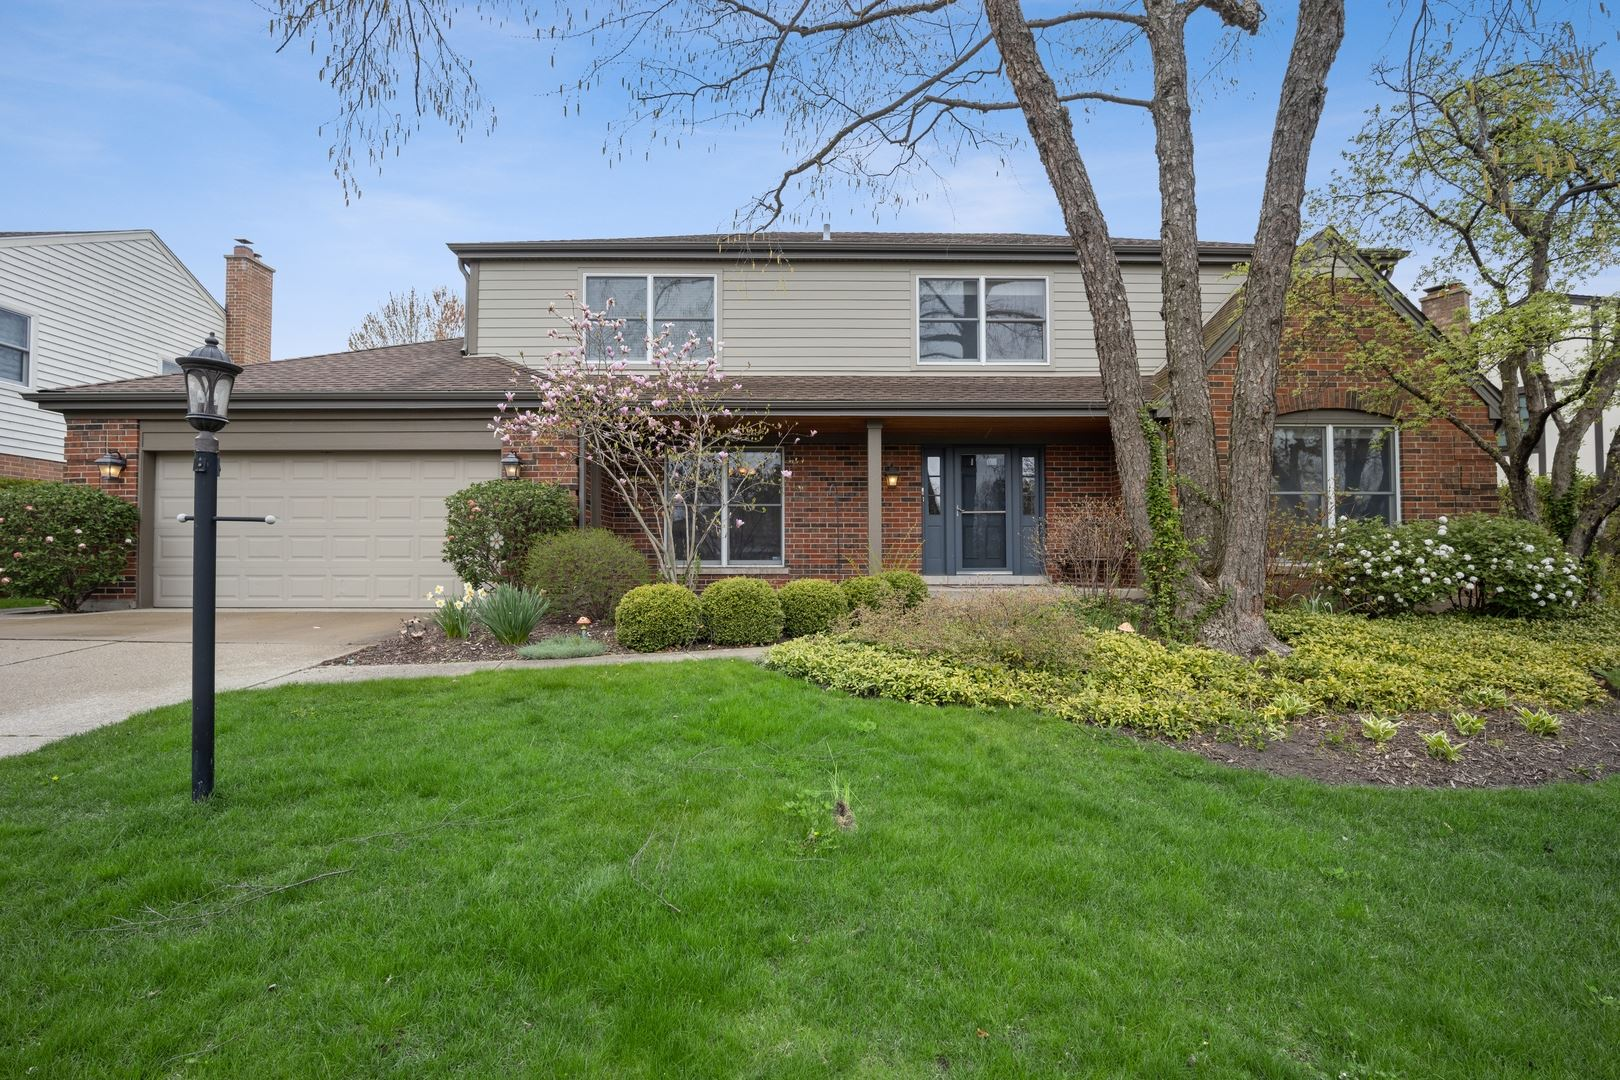 207 Trailwood Lane, Northbrook, IL 60062 - #: 10735453